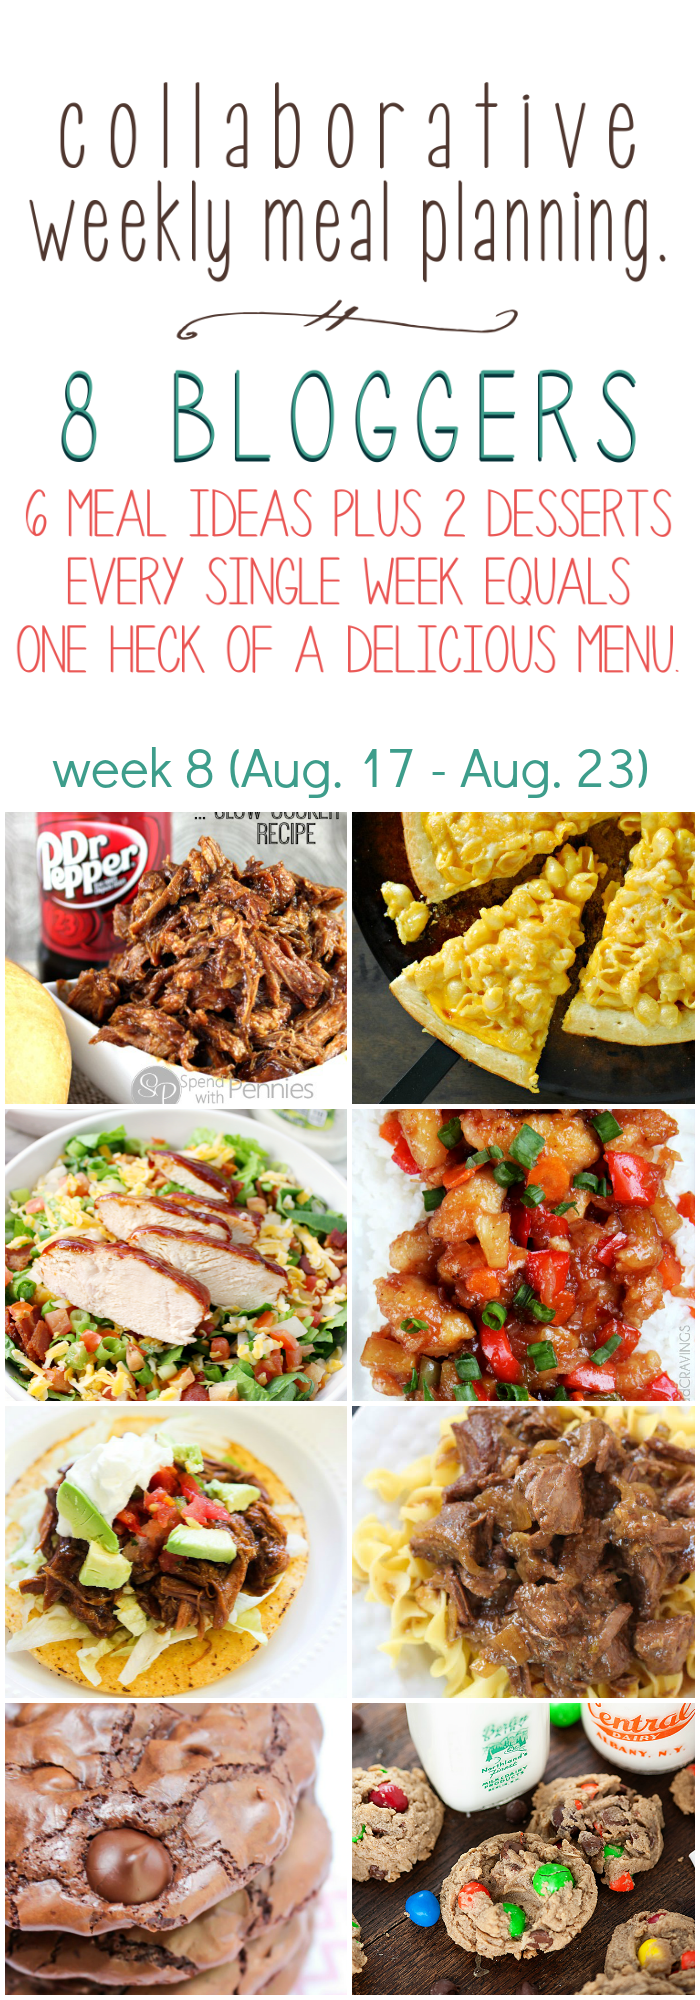 Collaborative weekly meal planning. 8 bloggers. 6 meal ideas plus 2 desserts every single week equals one heck of a delicious menu - week 8.